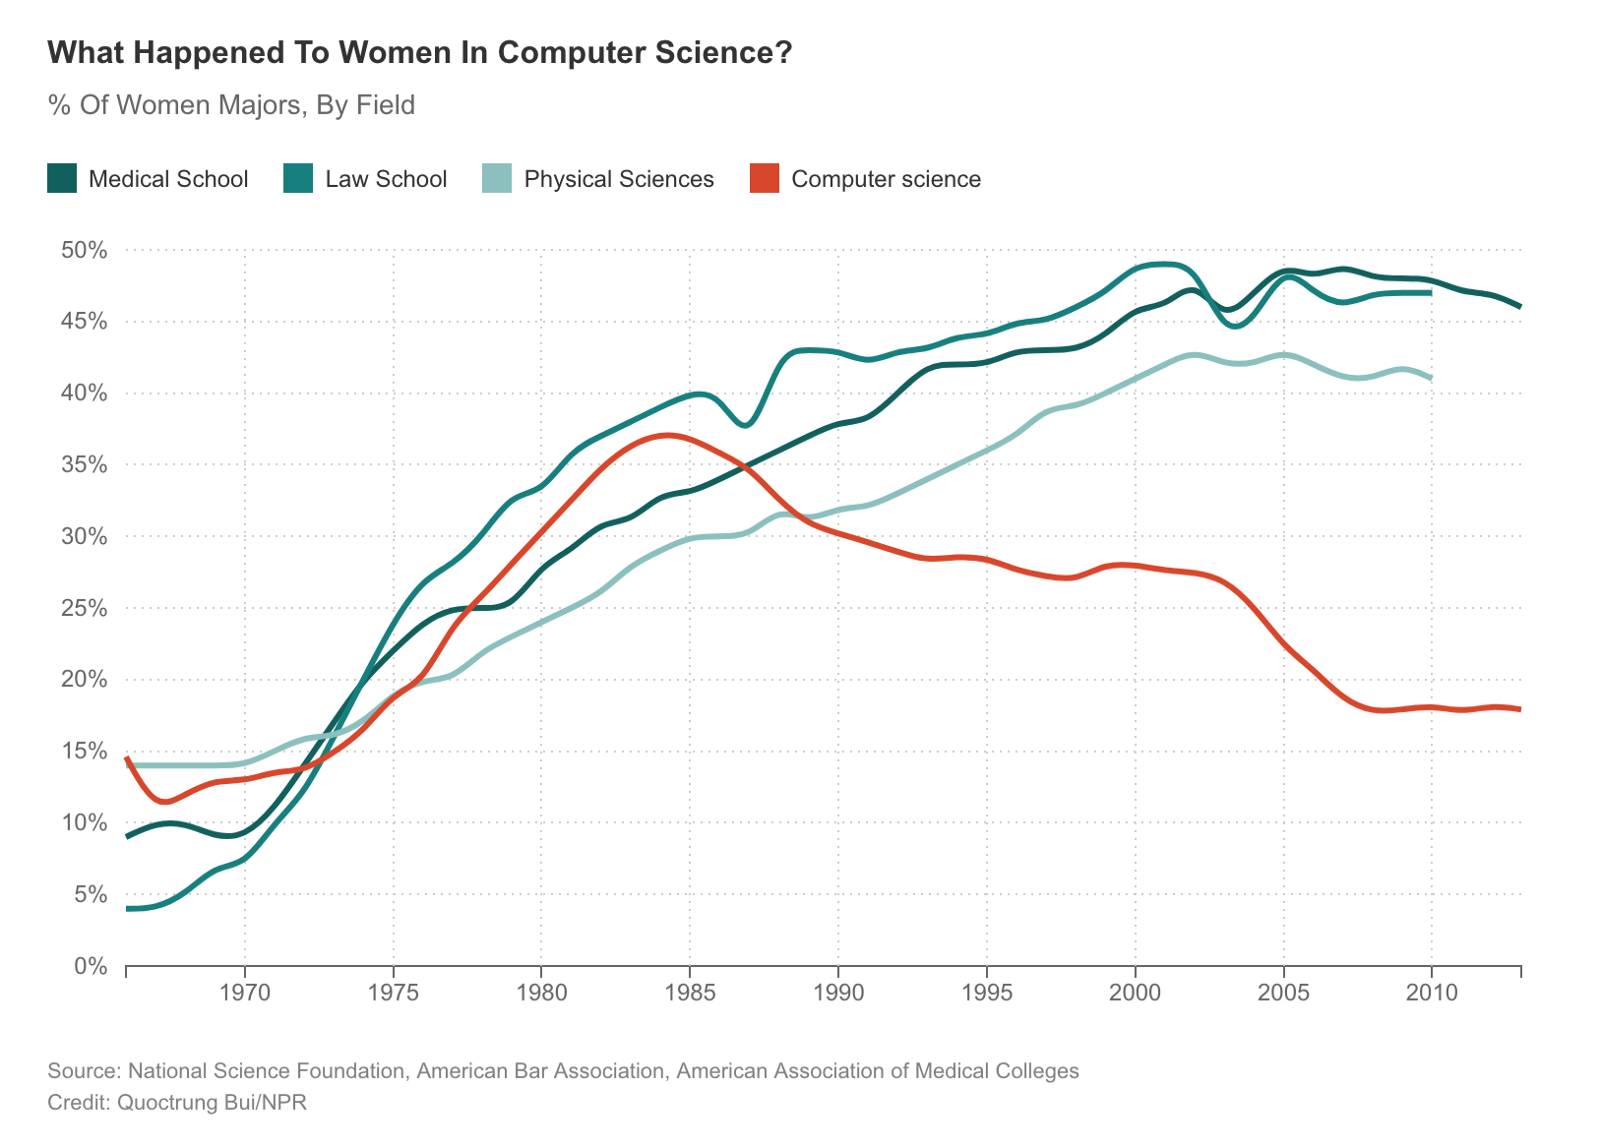 % of women pursuing CS degrees started dropping dramatically in the 1980's.